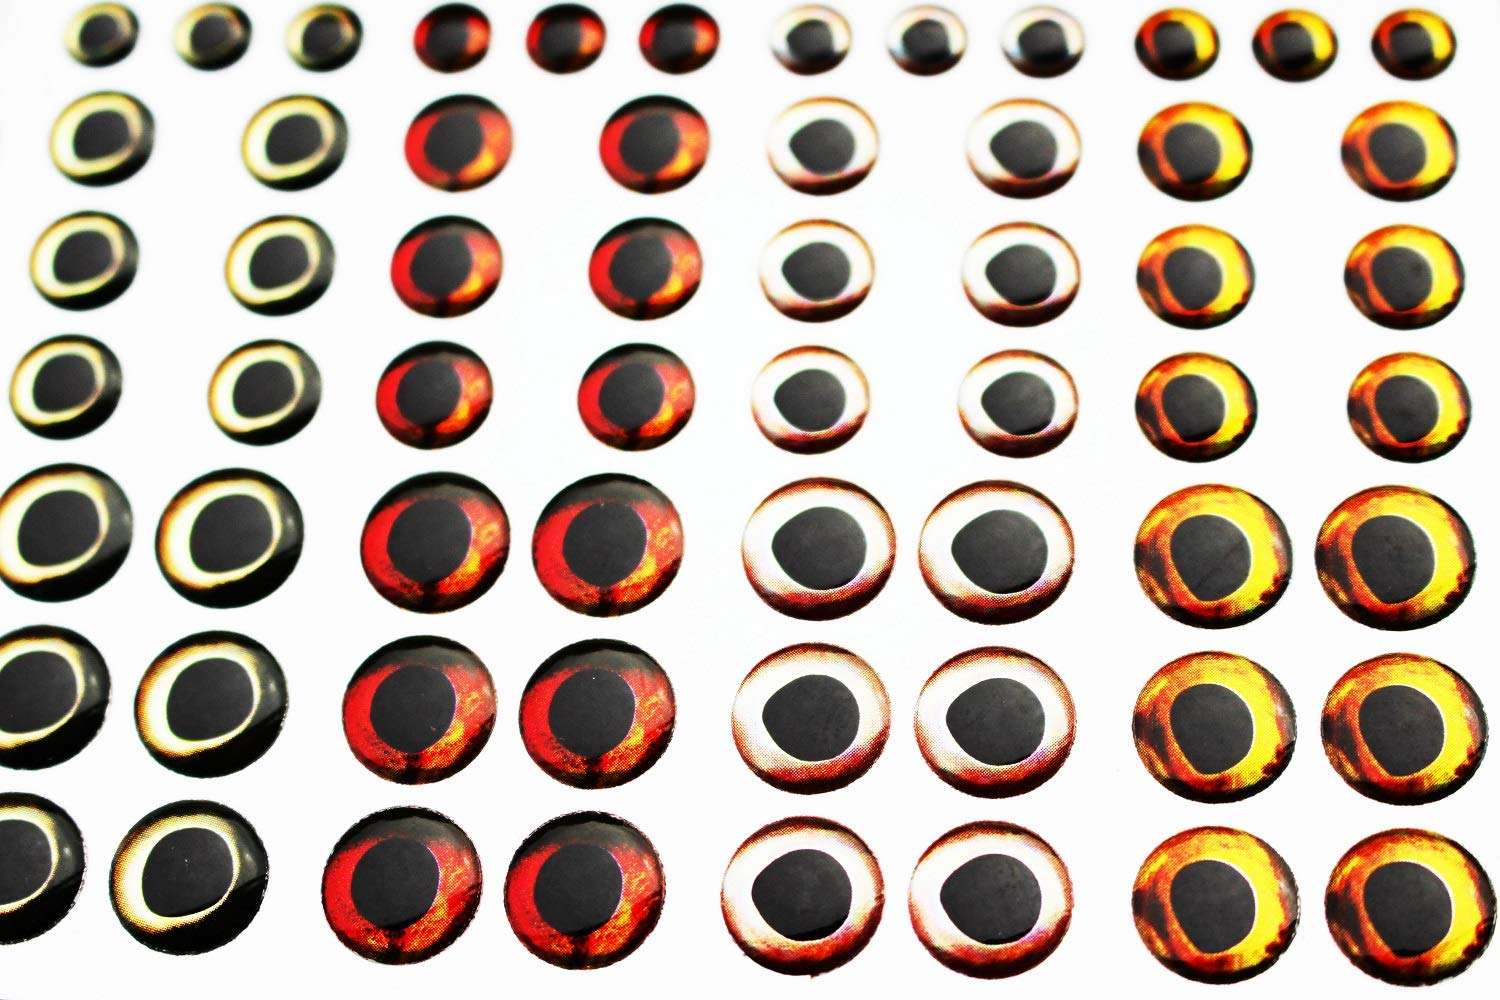 Tigofly 72 pcs Mixed 4 Colors 6//8//10mm 4D Fish Eyes Realistic Holographic Fly Fishing Lures Artificial Eyes Fly Tying Materials